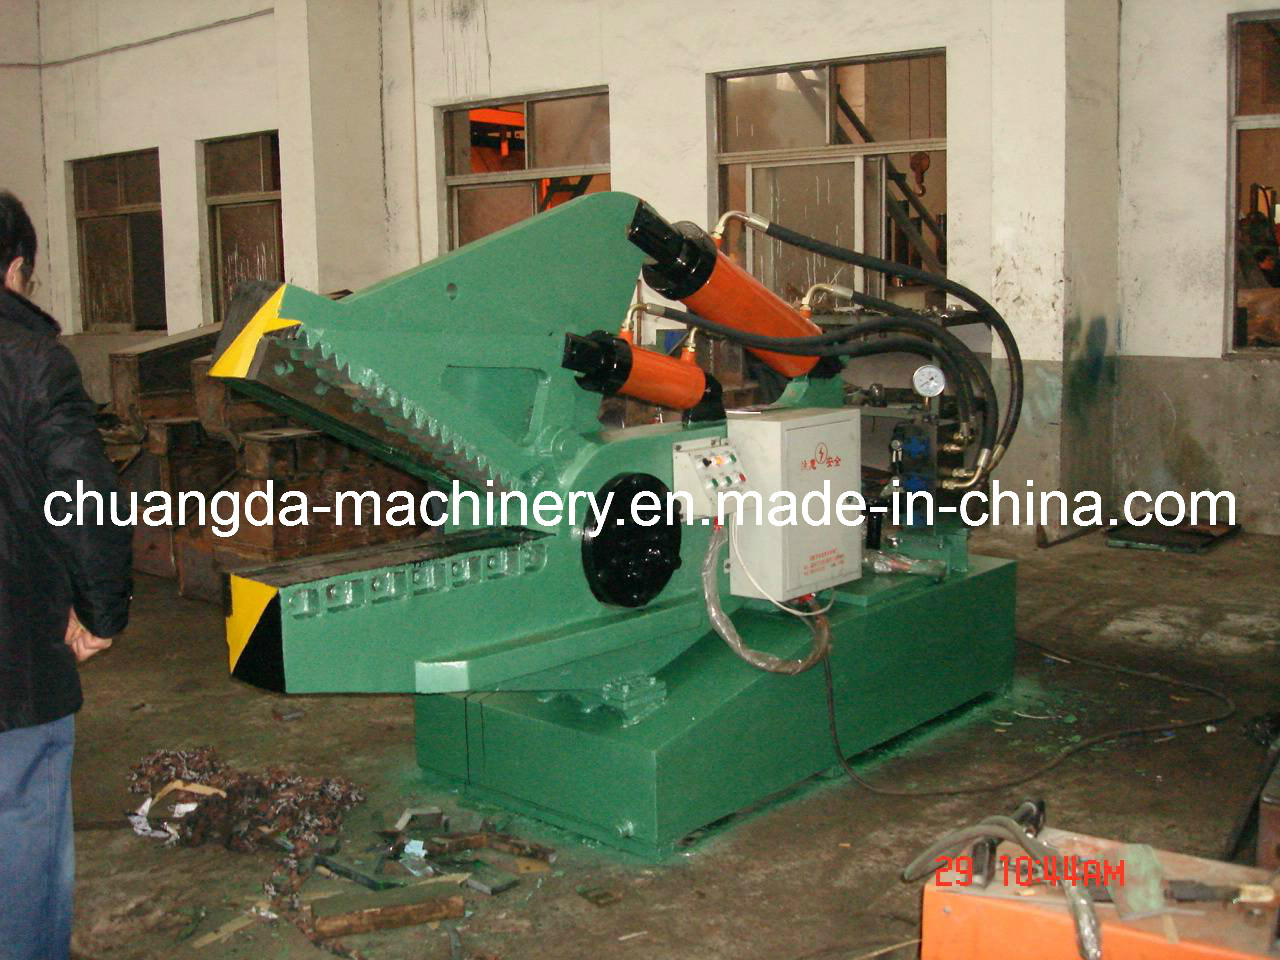 Hydraulic Metal Shear (Q08-160)